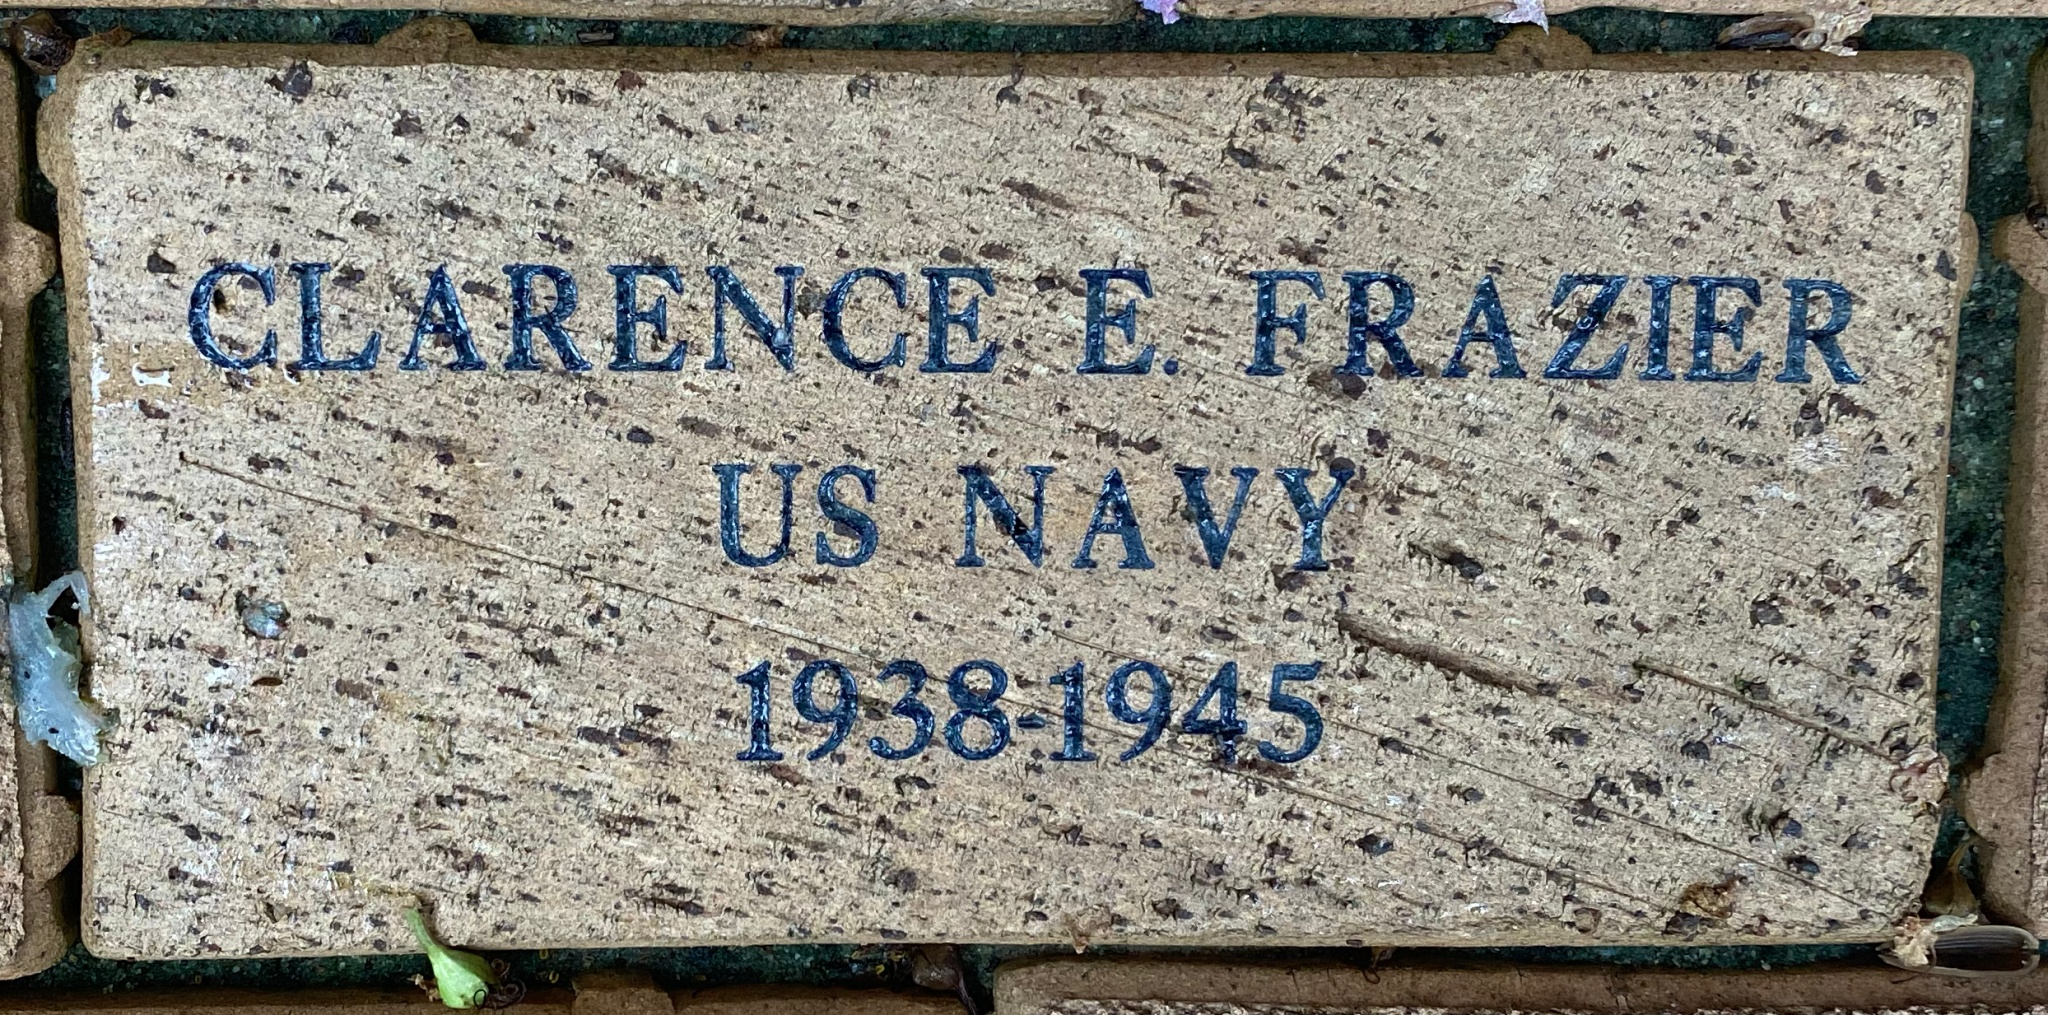 CLARENCE E FRAZIER US NAVY 1938-1945